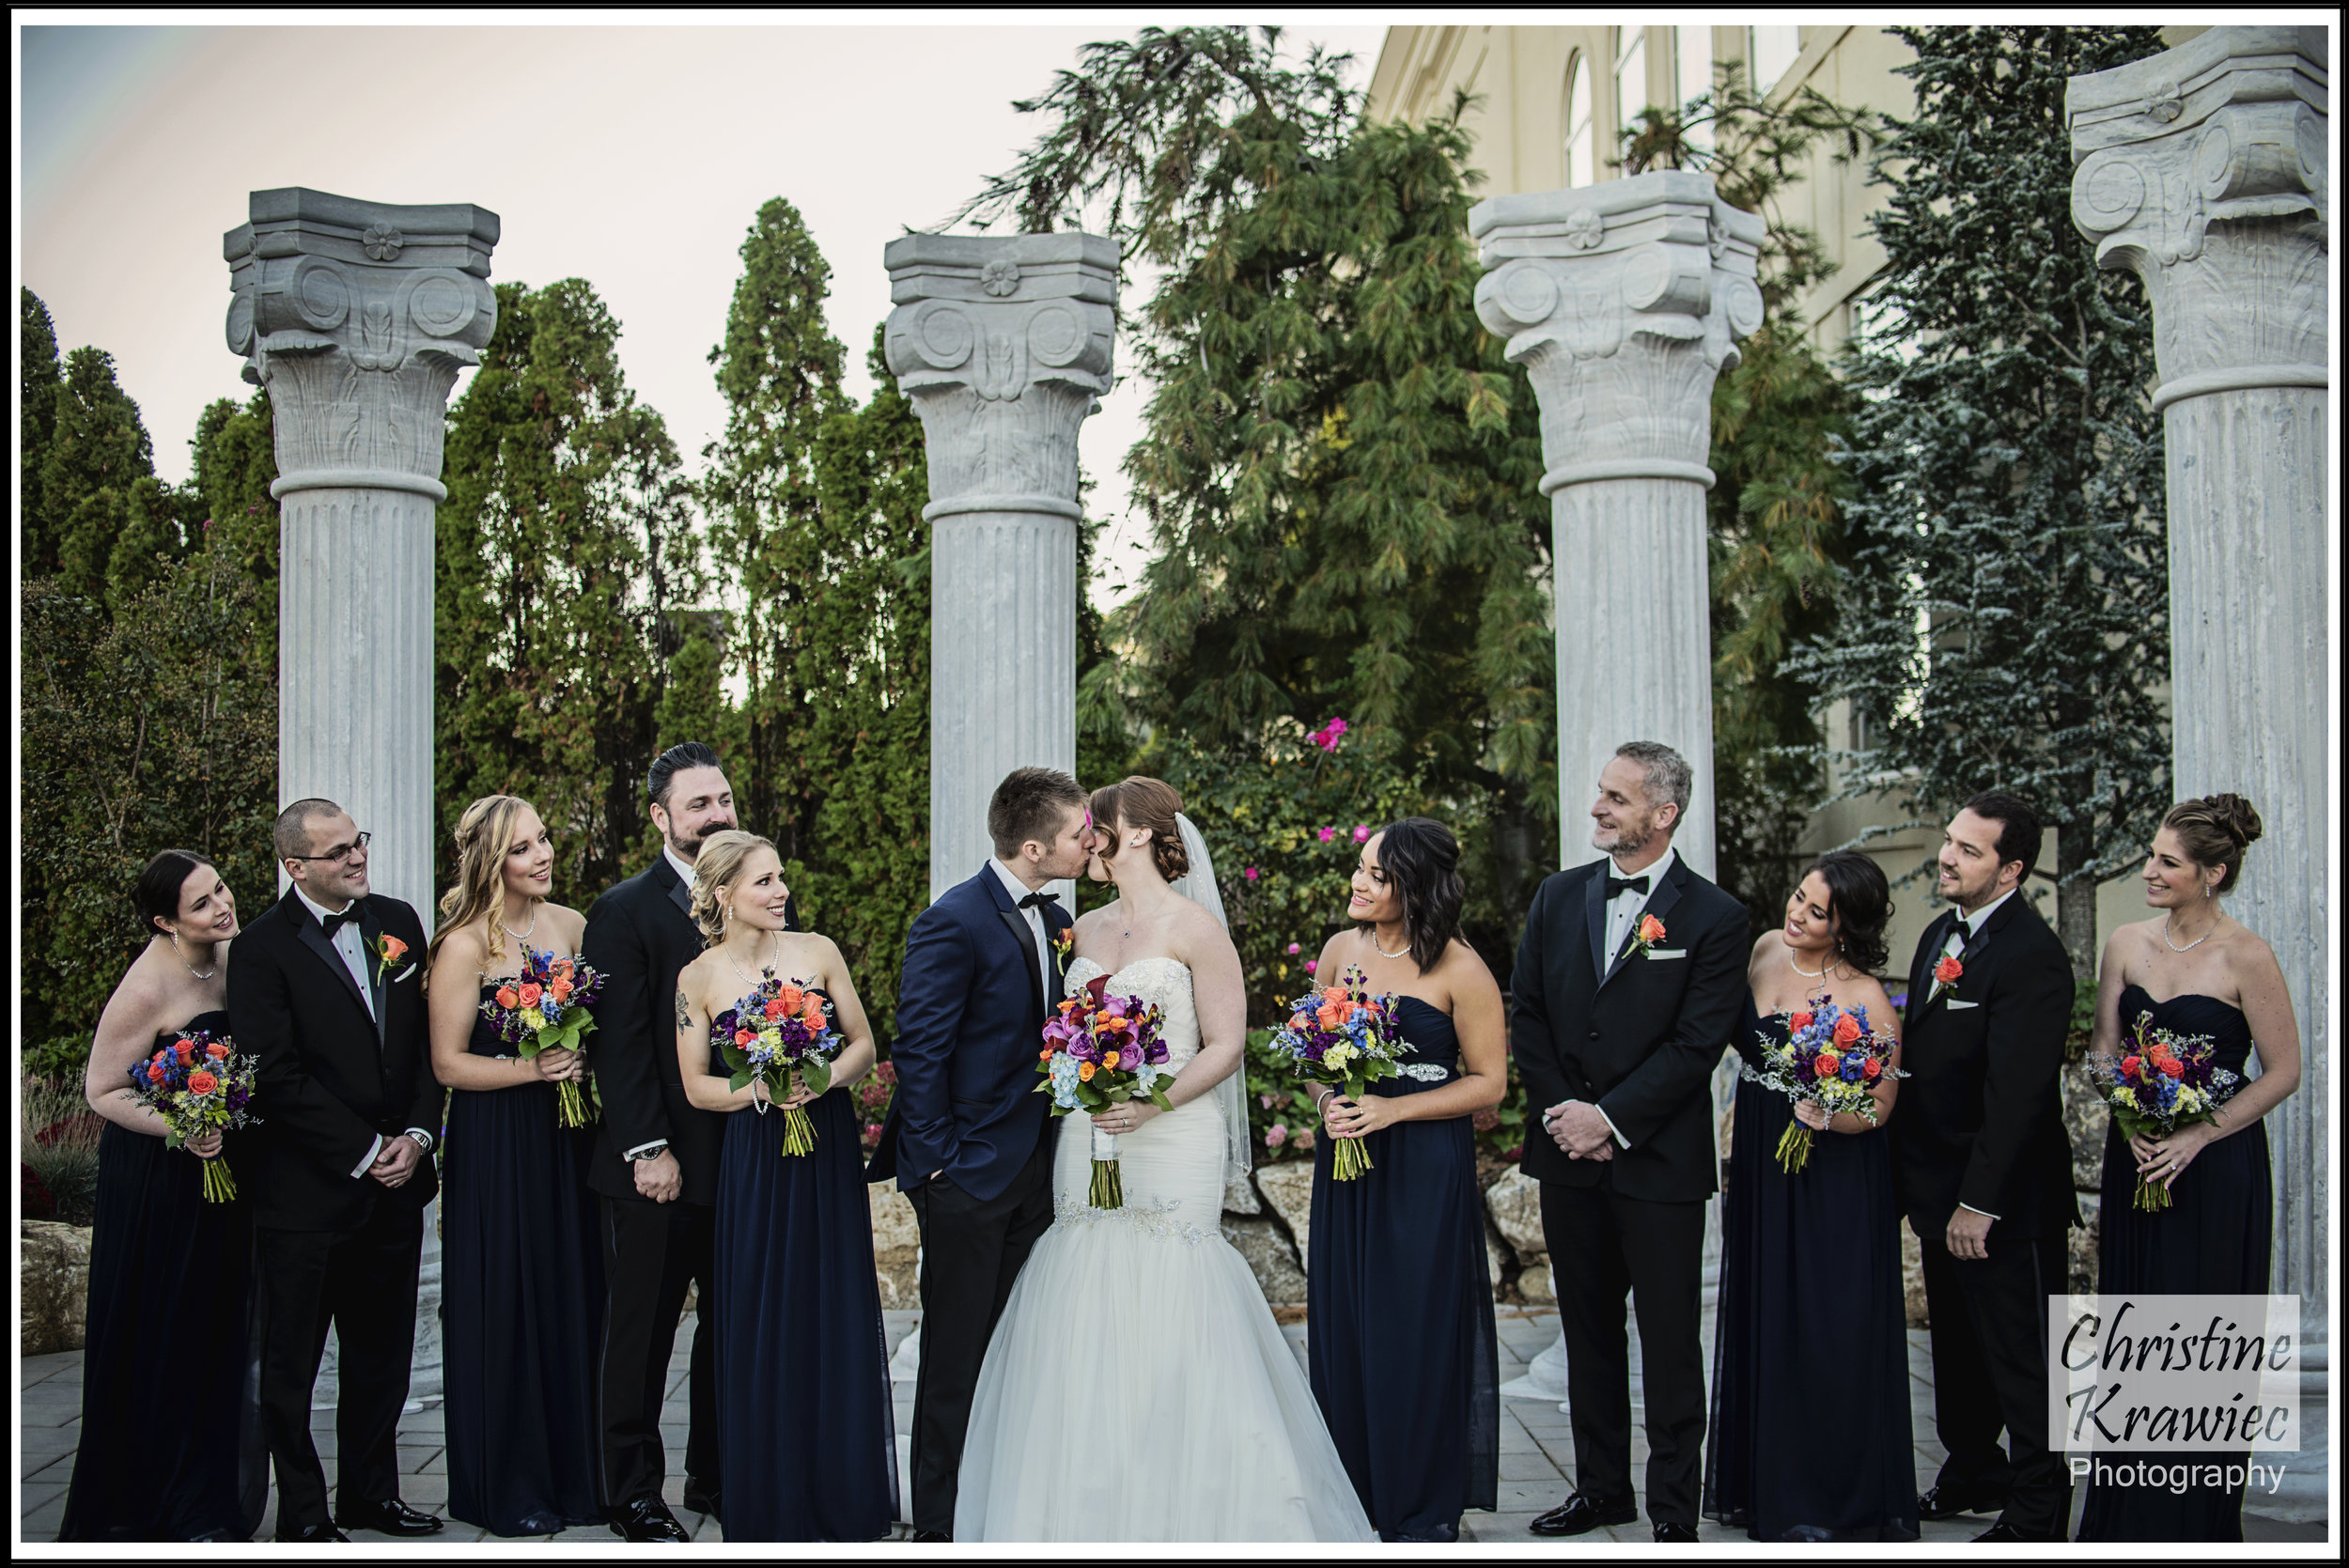 The blues and blacks flow so nicely together in their bridal party, especially Mark's tux!